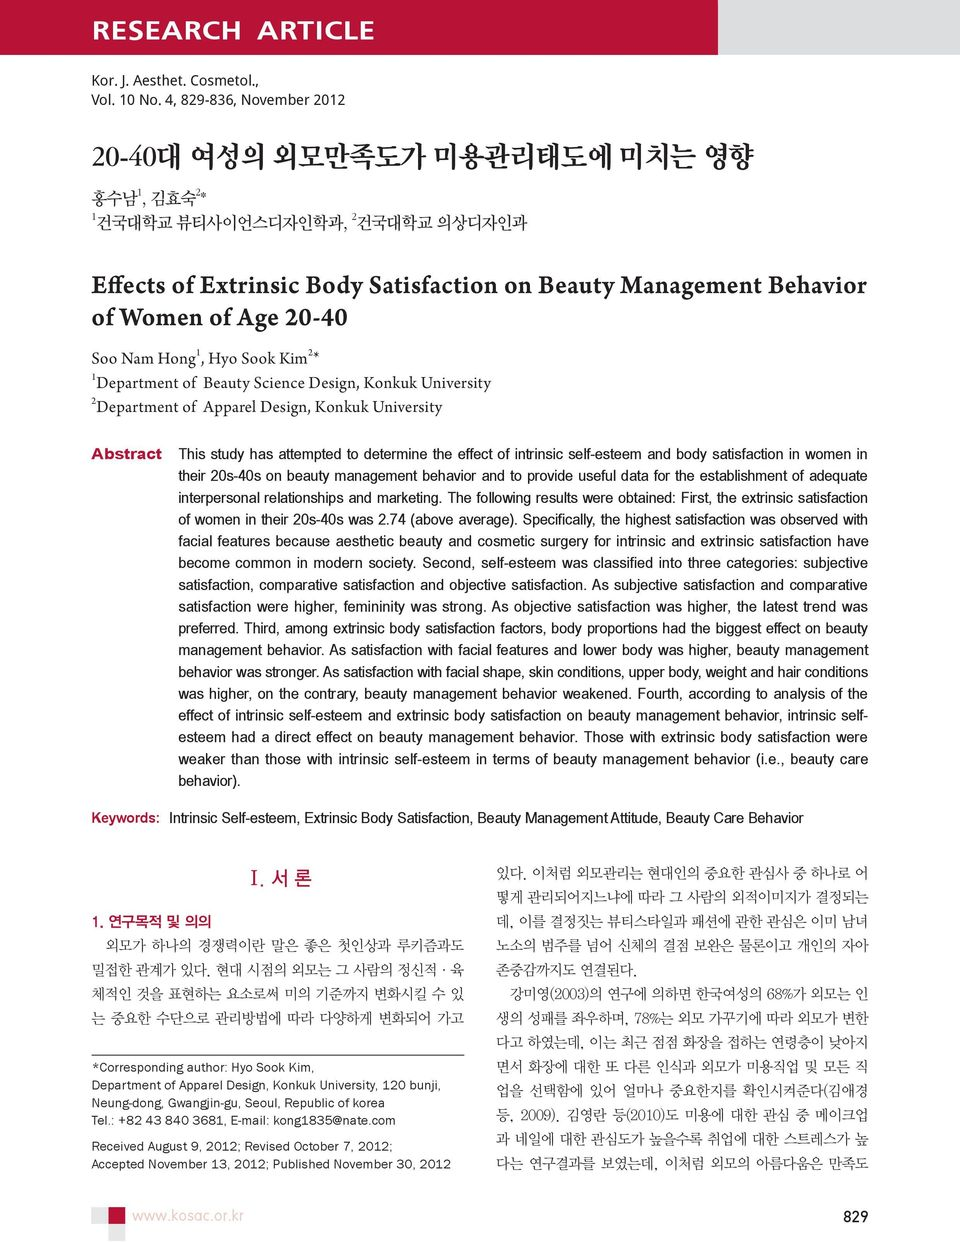 Sook Kim 2 * 1 Department of Beauty Science Design, Konkuk University 2 Department of Apparel Design, Konkuk University Abstract This study has attempted to determine the effect of intrinsic